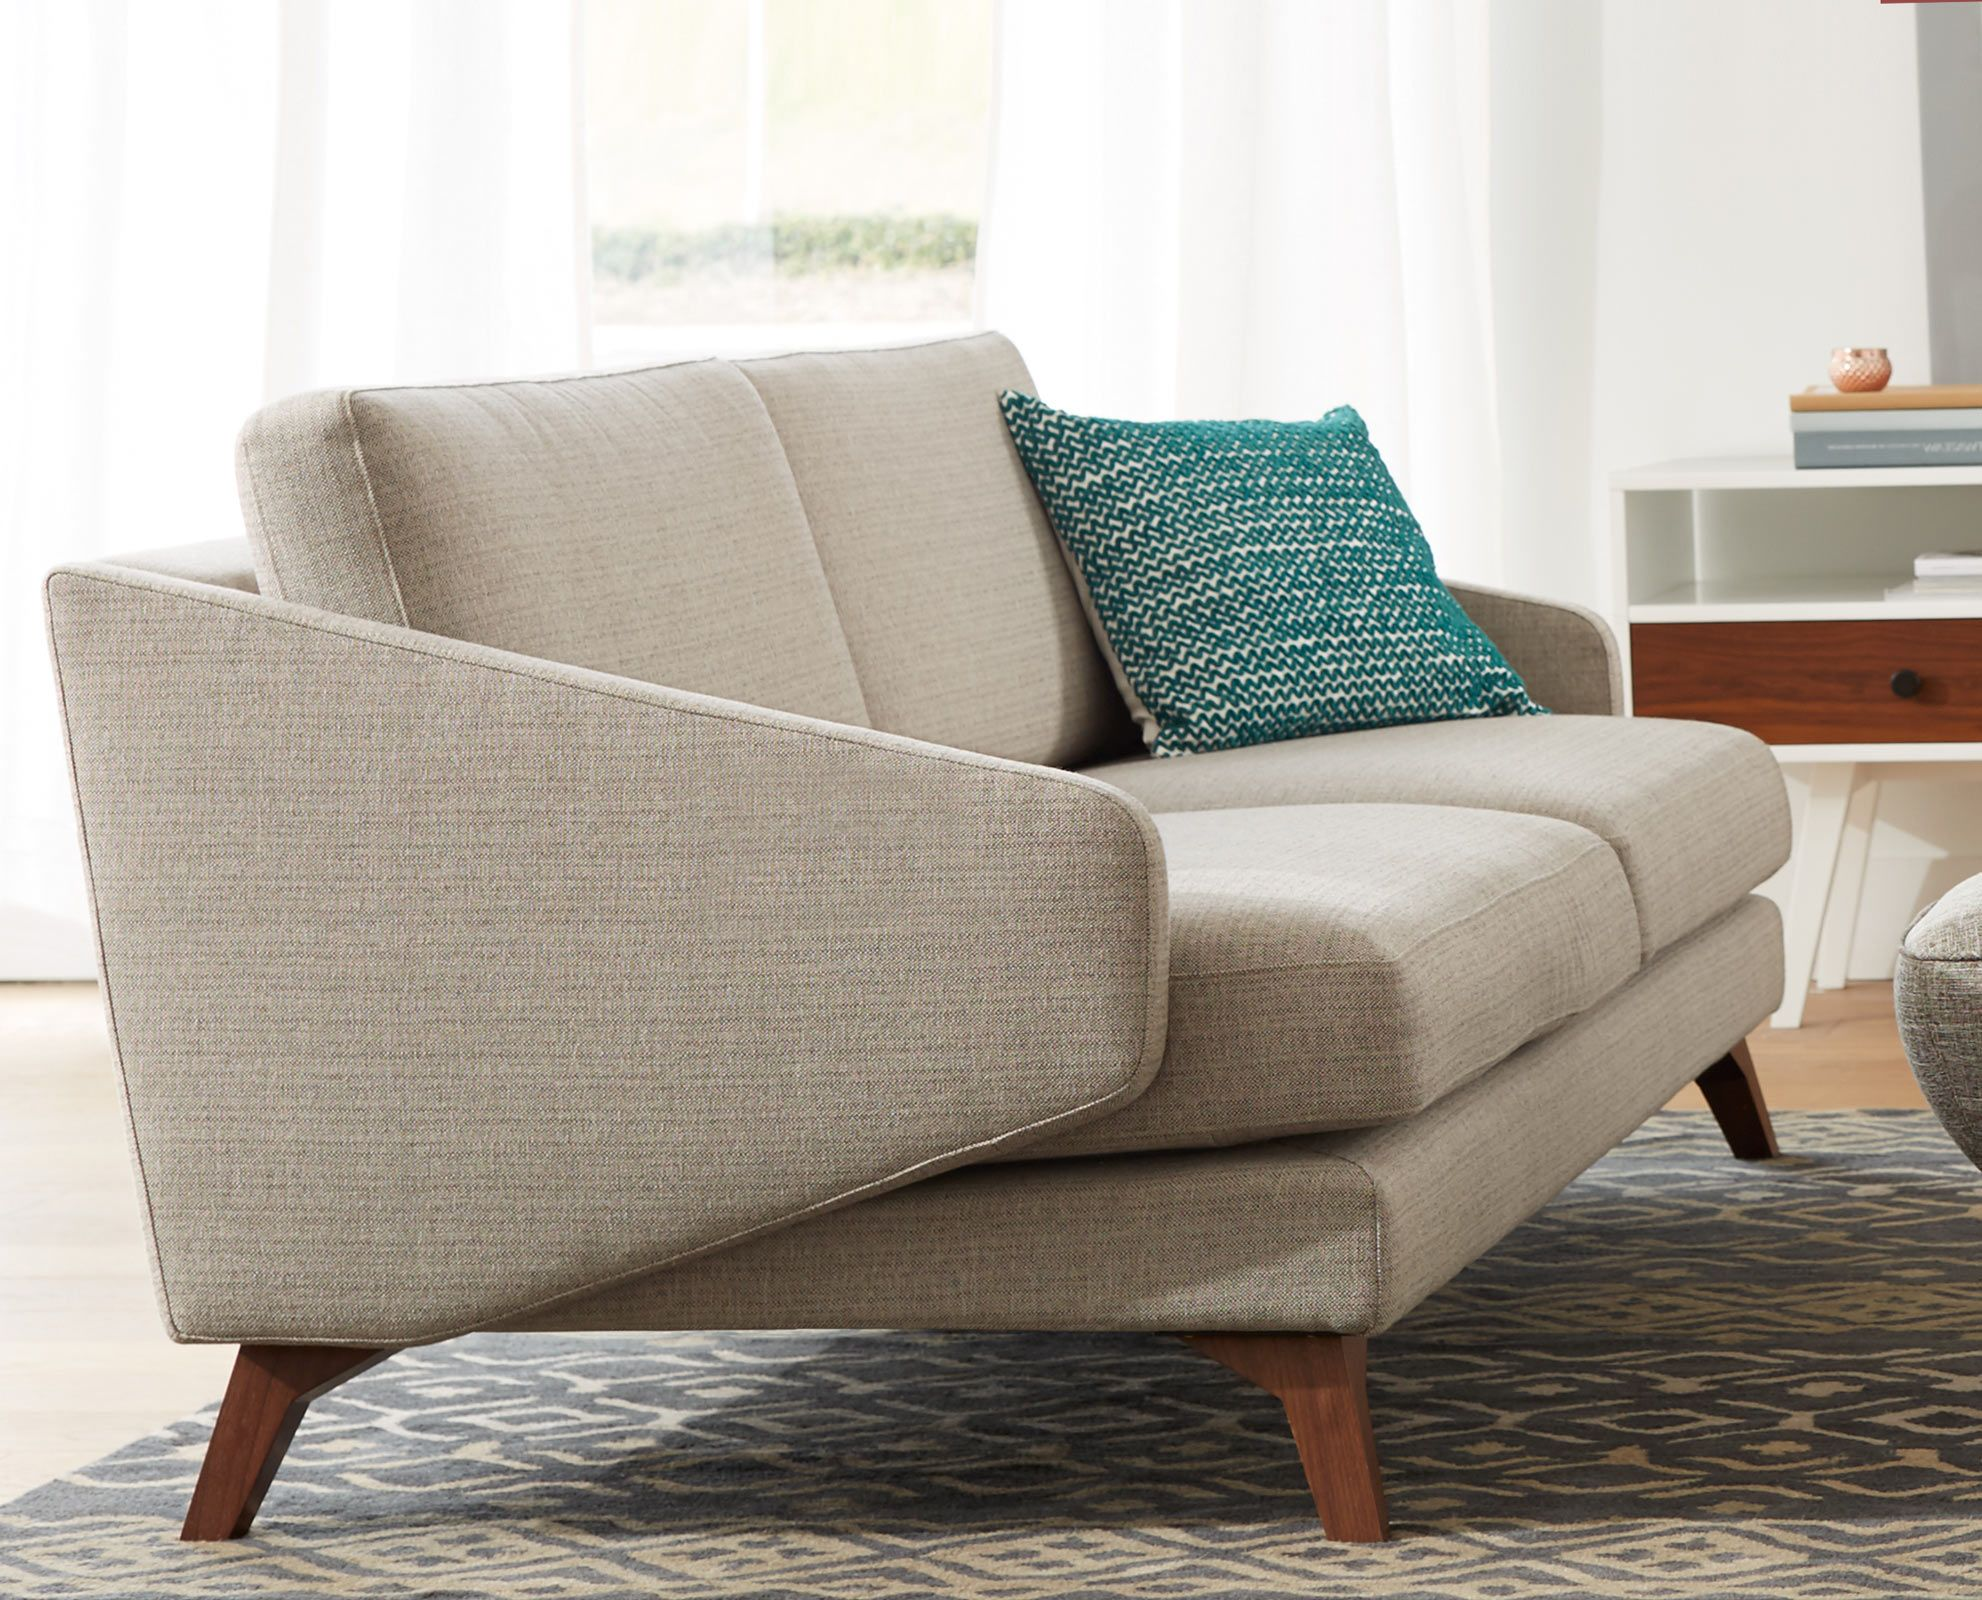 Astrid Sofa from Scandinavia Designs MidCentury Modern